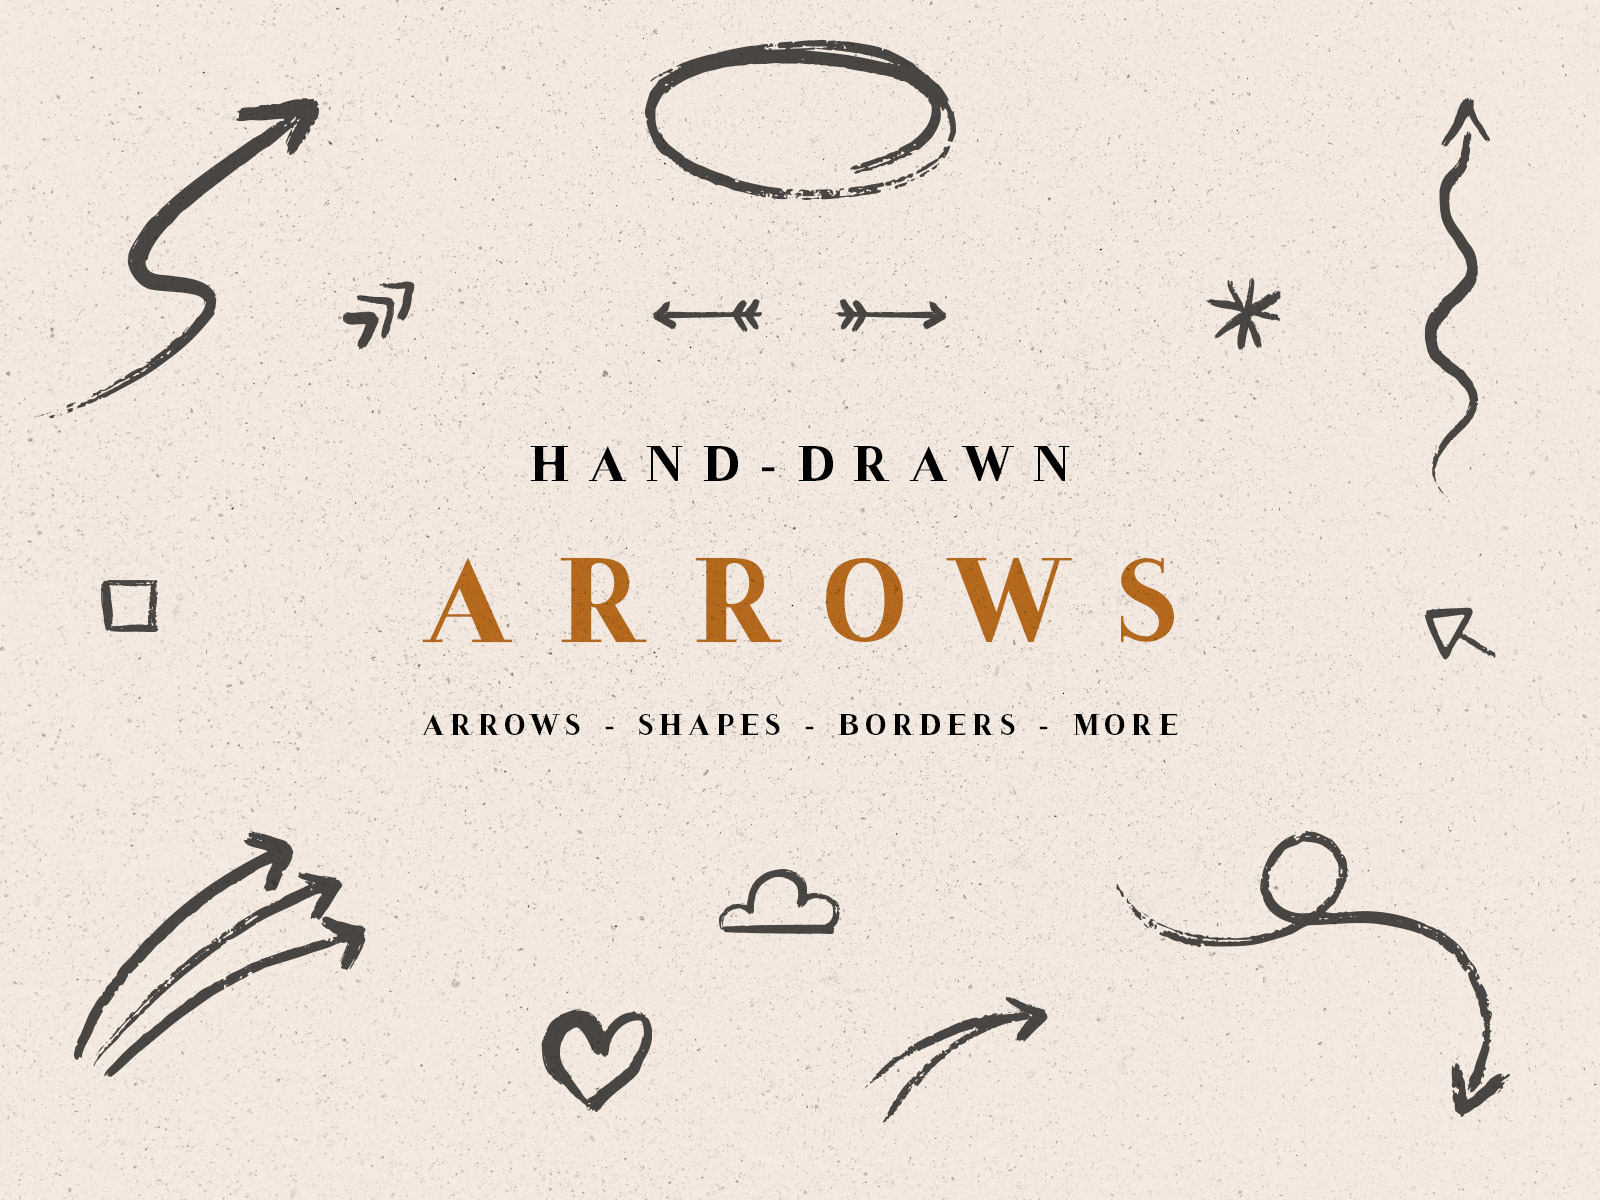 Handdrawn Arrows And Shapes